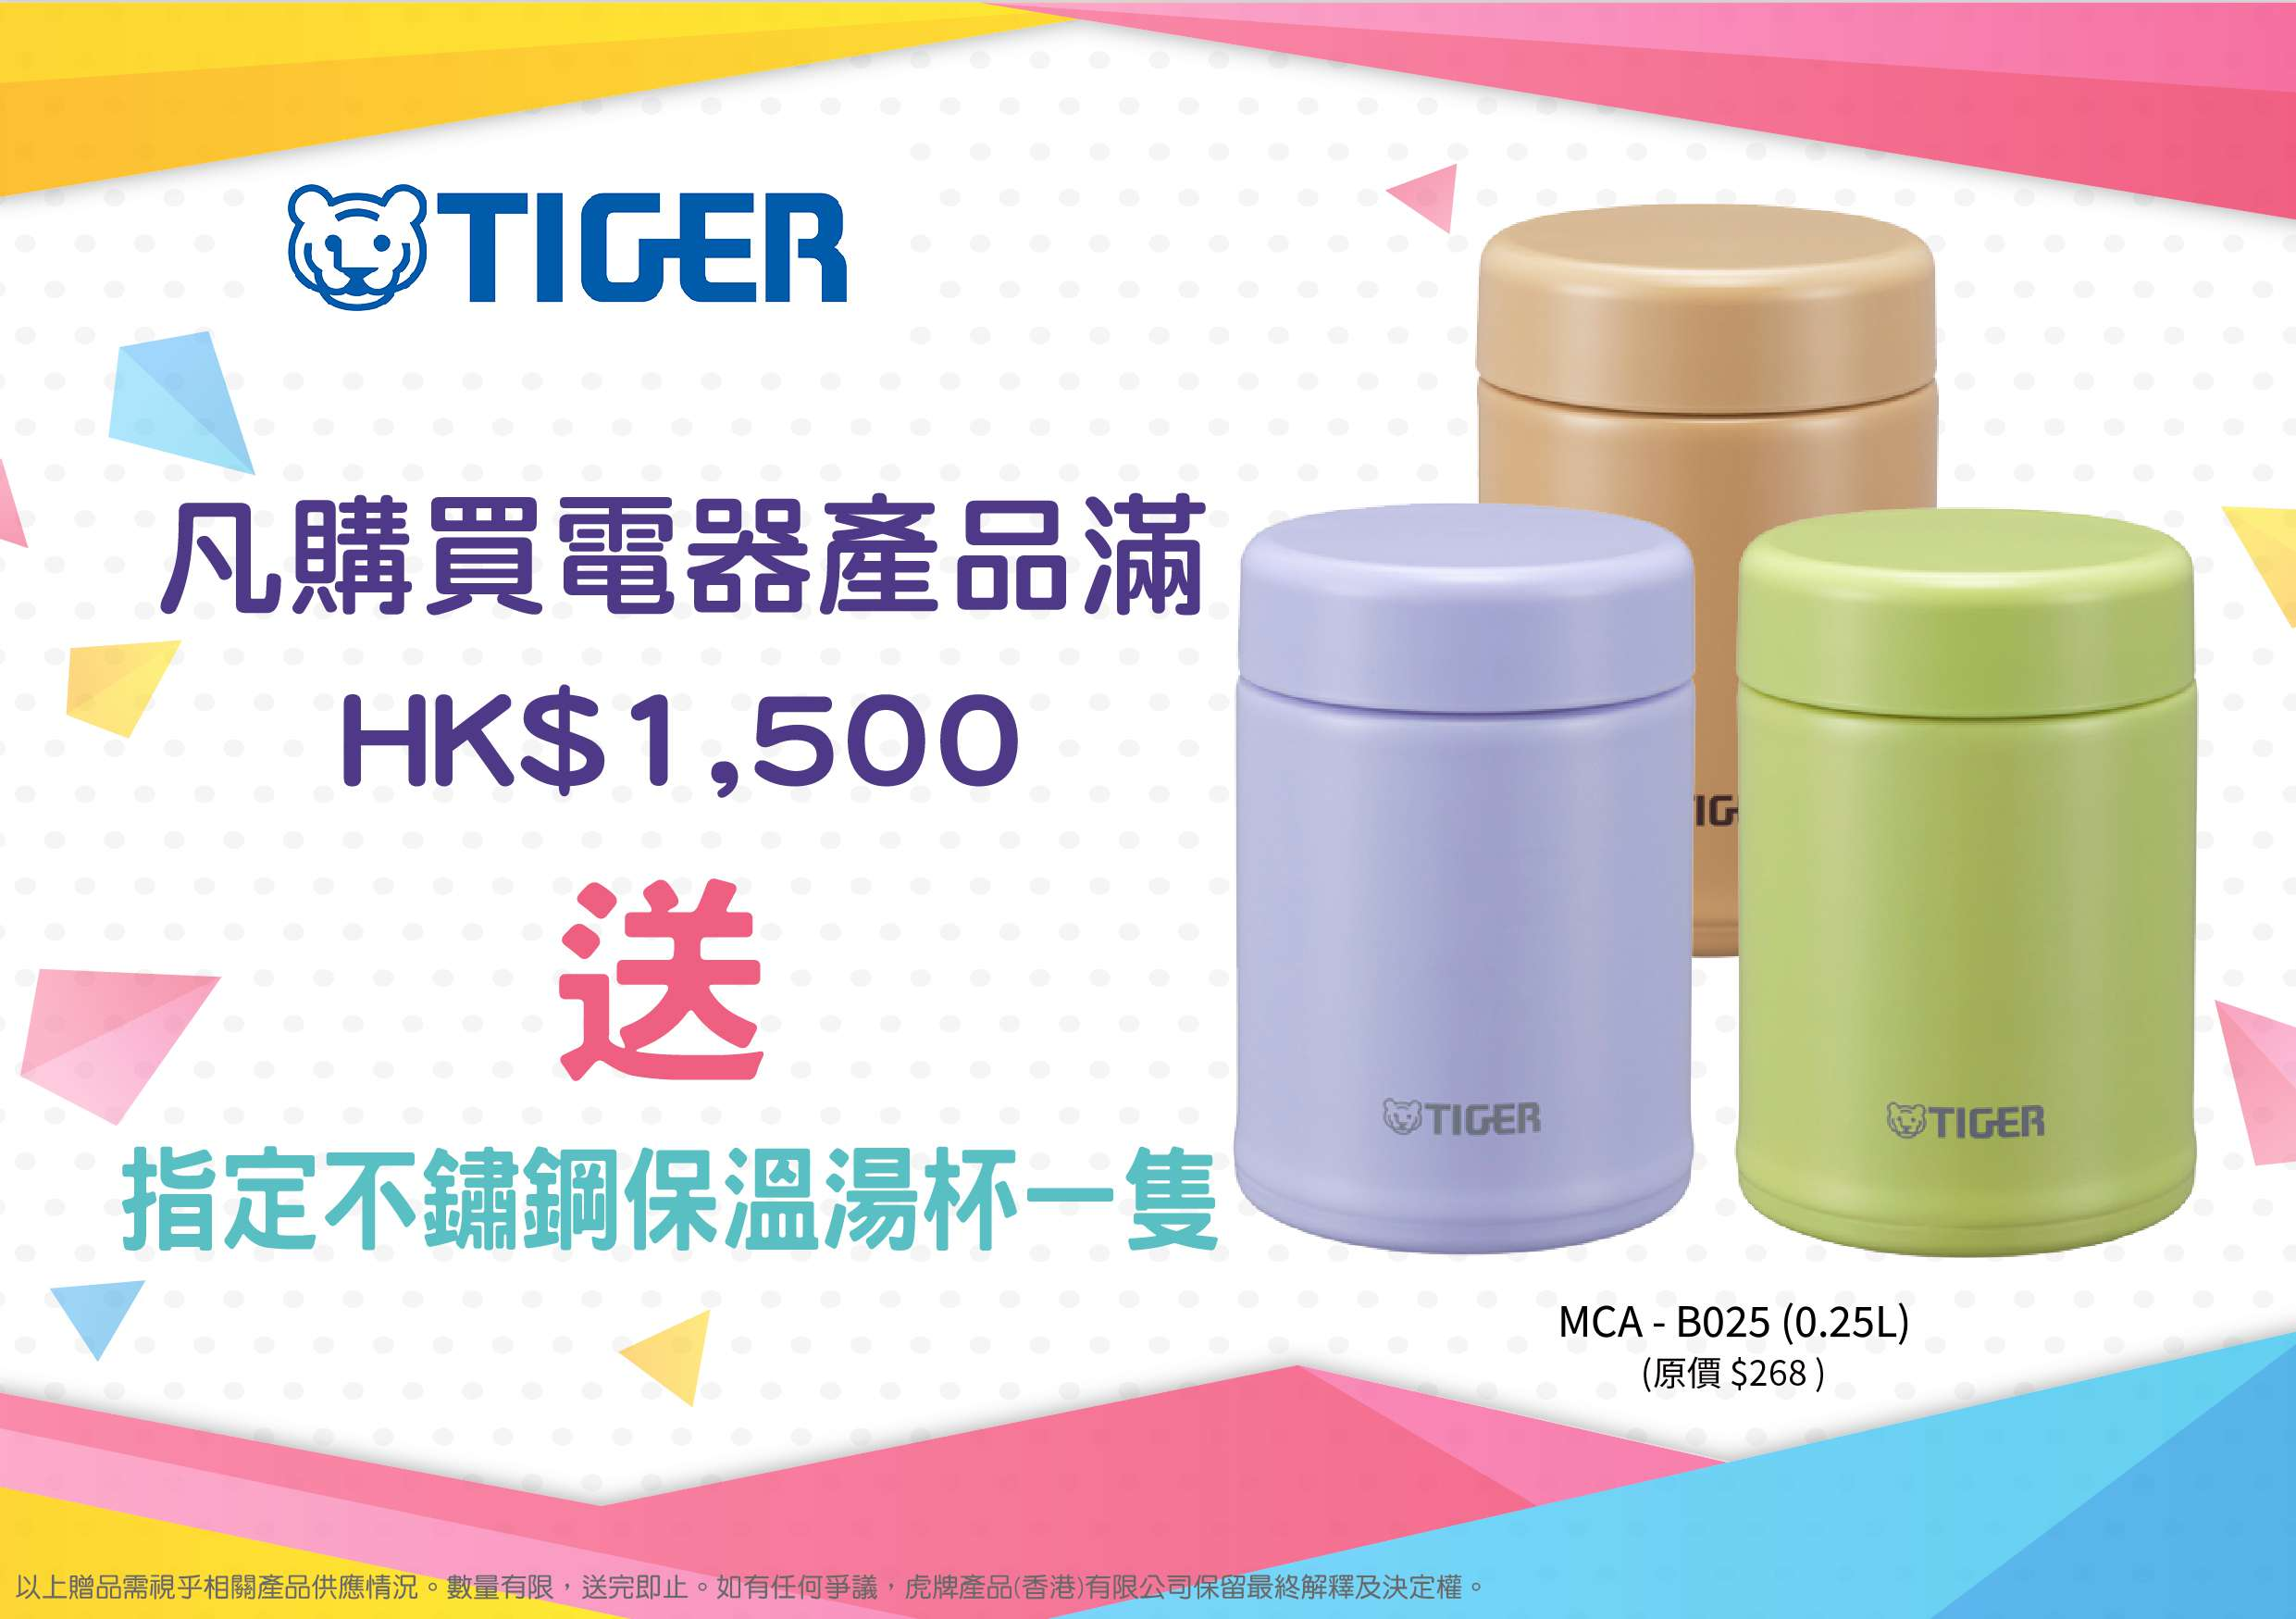 tiger-mca-b-free-gift-june-2018-1.jpg (201 KB)